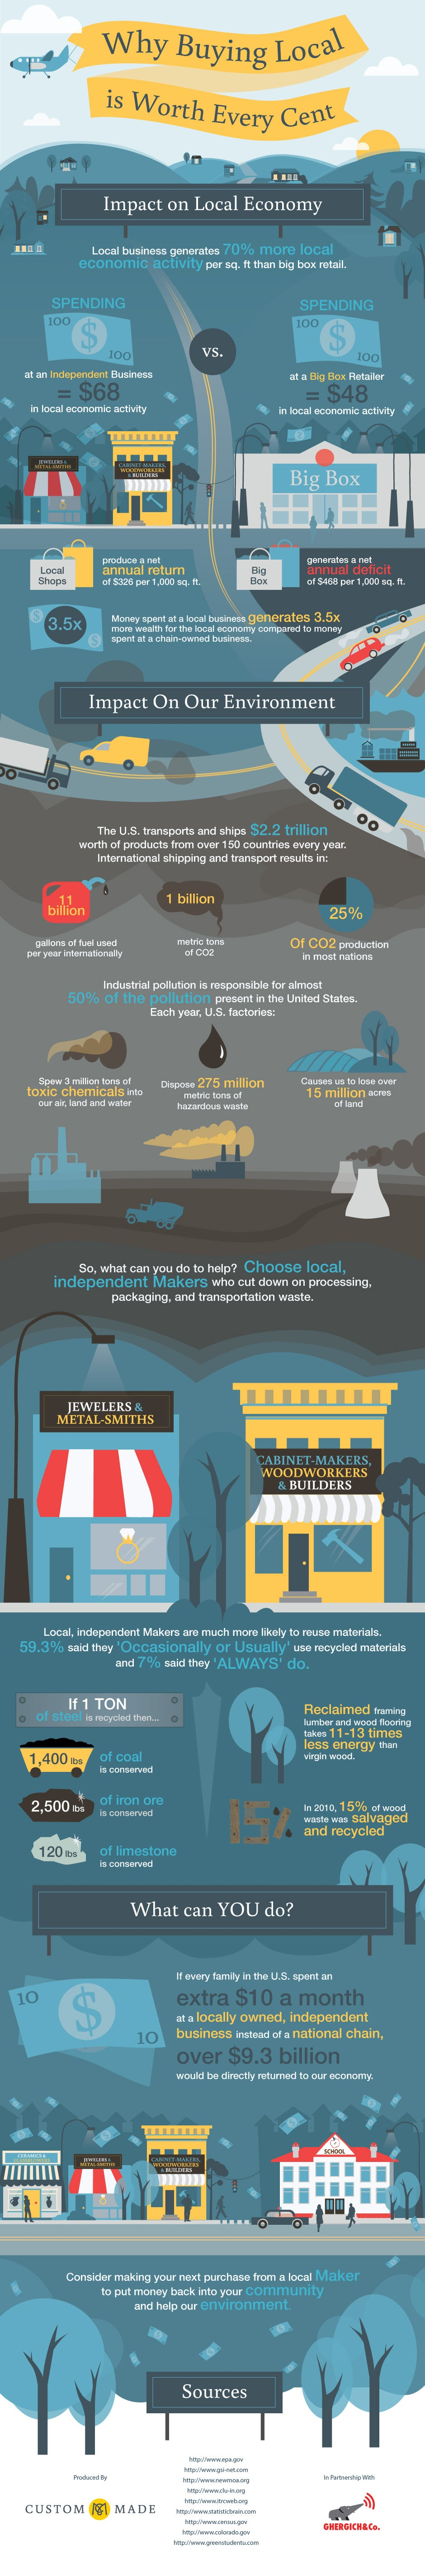 2013-11-20-buying_local_infograph1-thumb